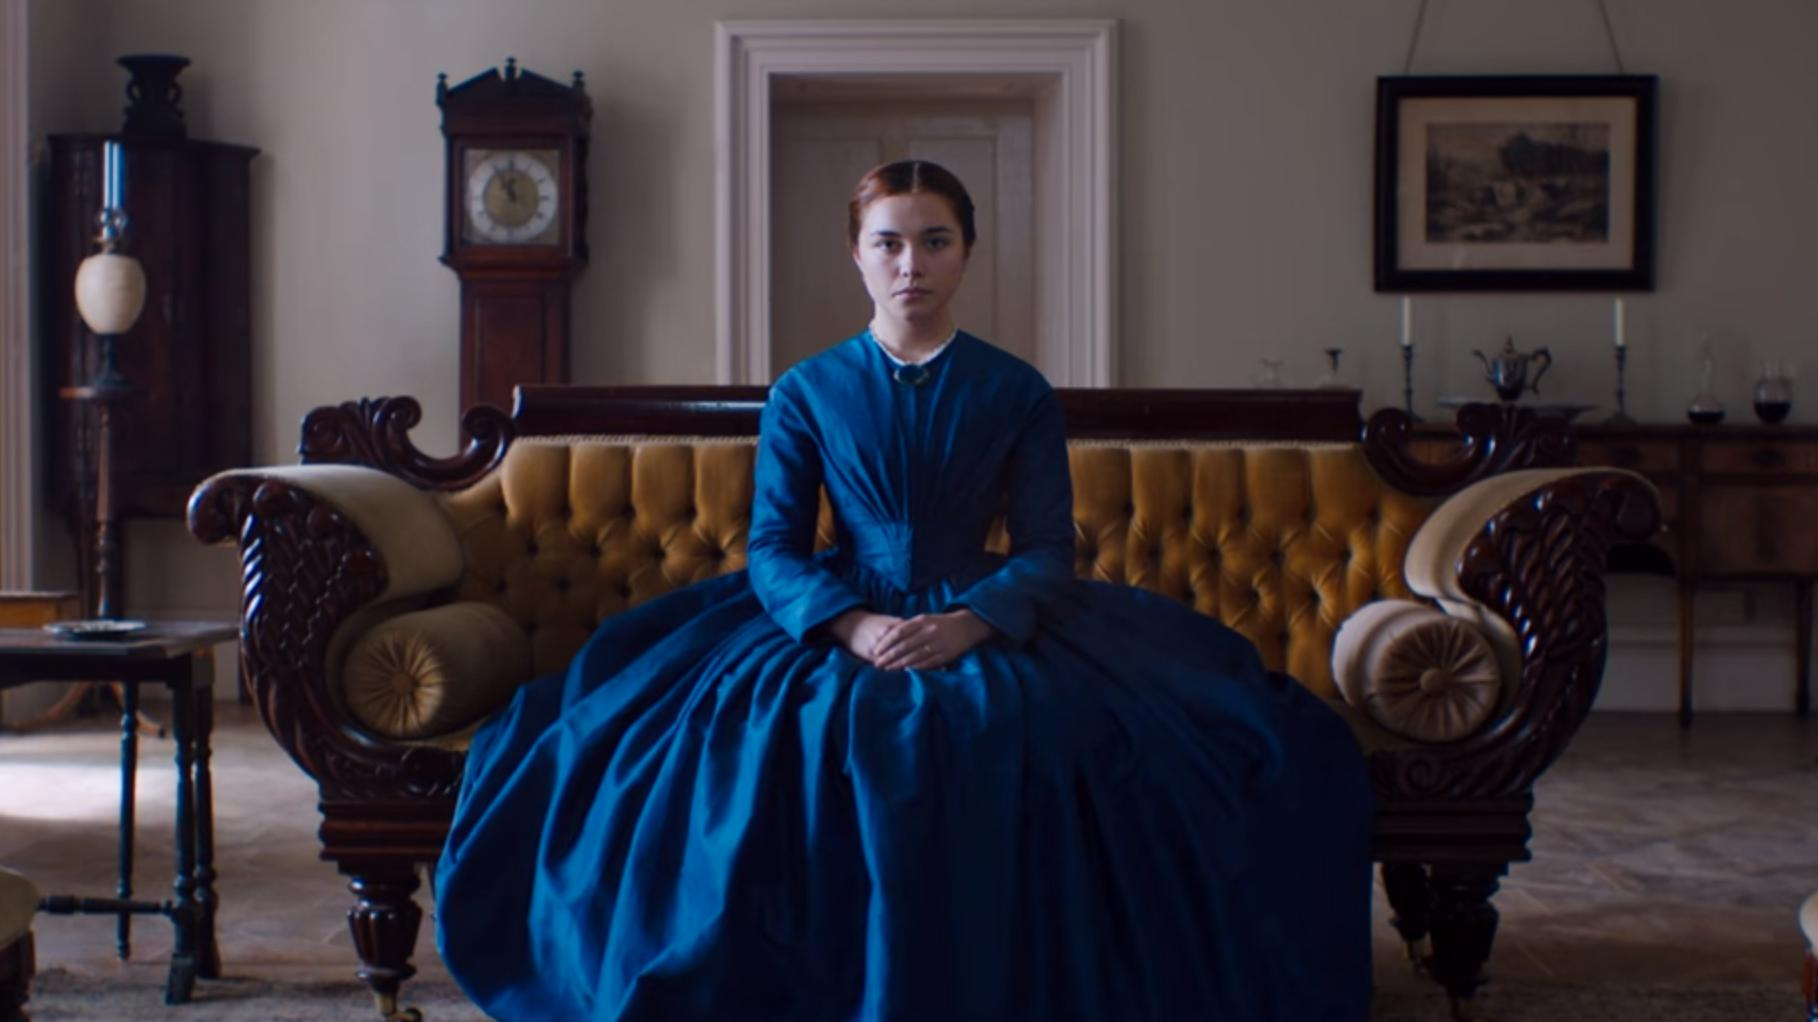 Pugh, thinking dangerous thoughts in Lady Macbeth